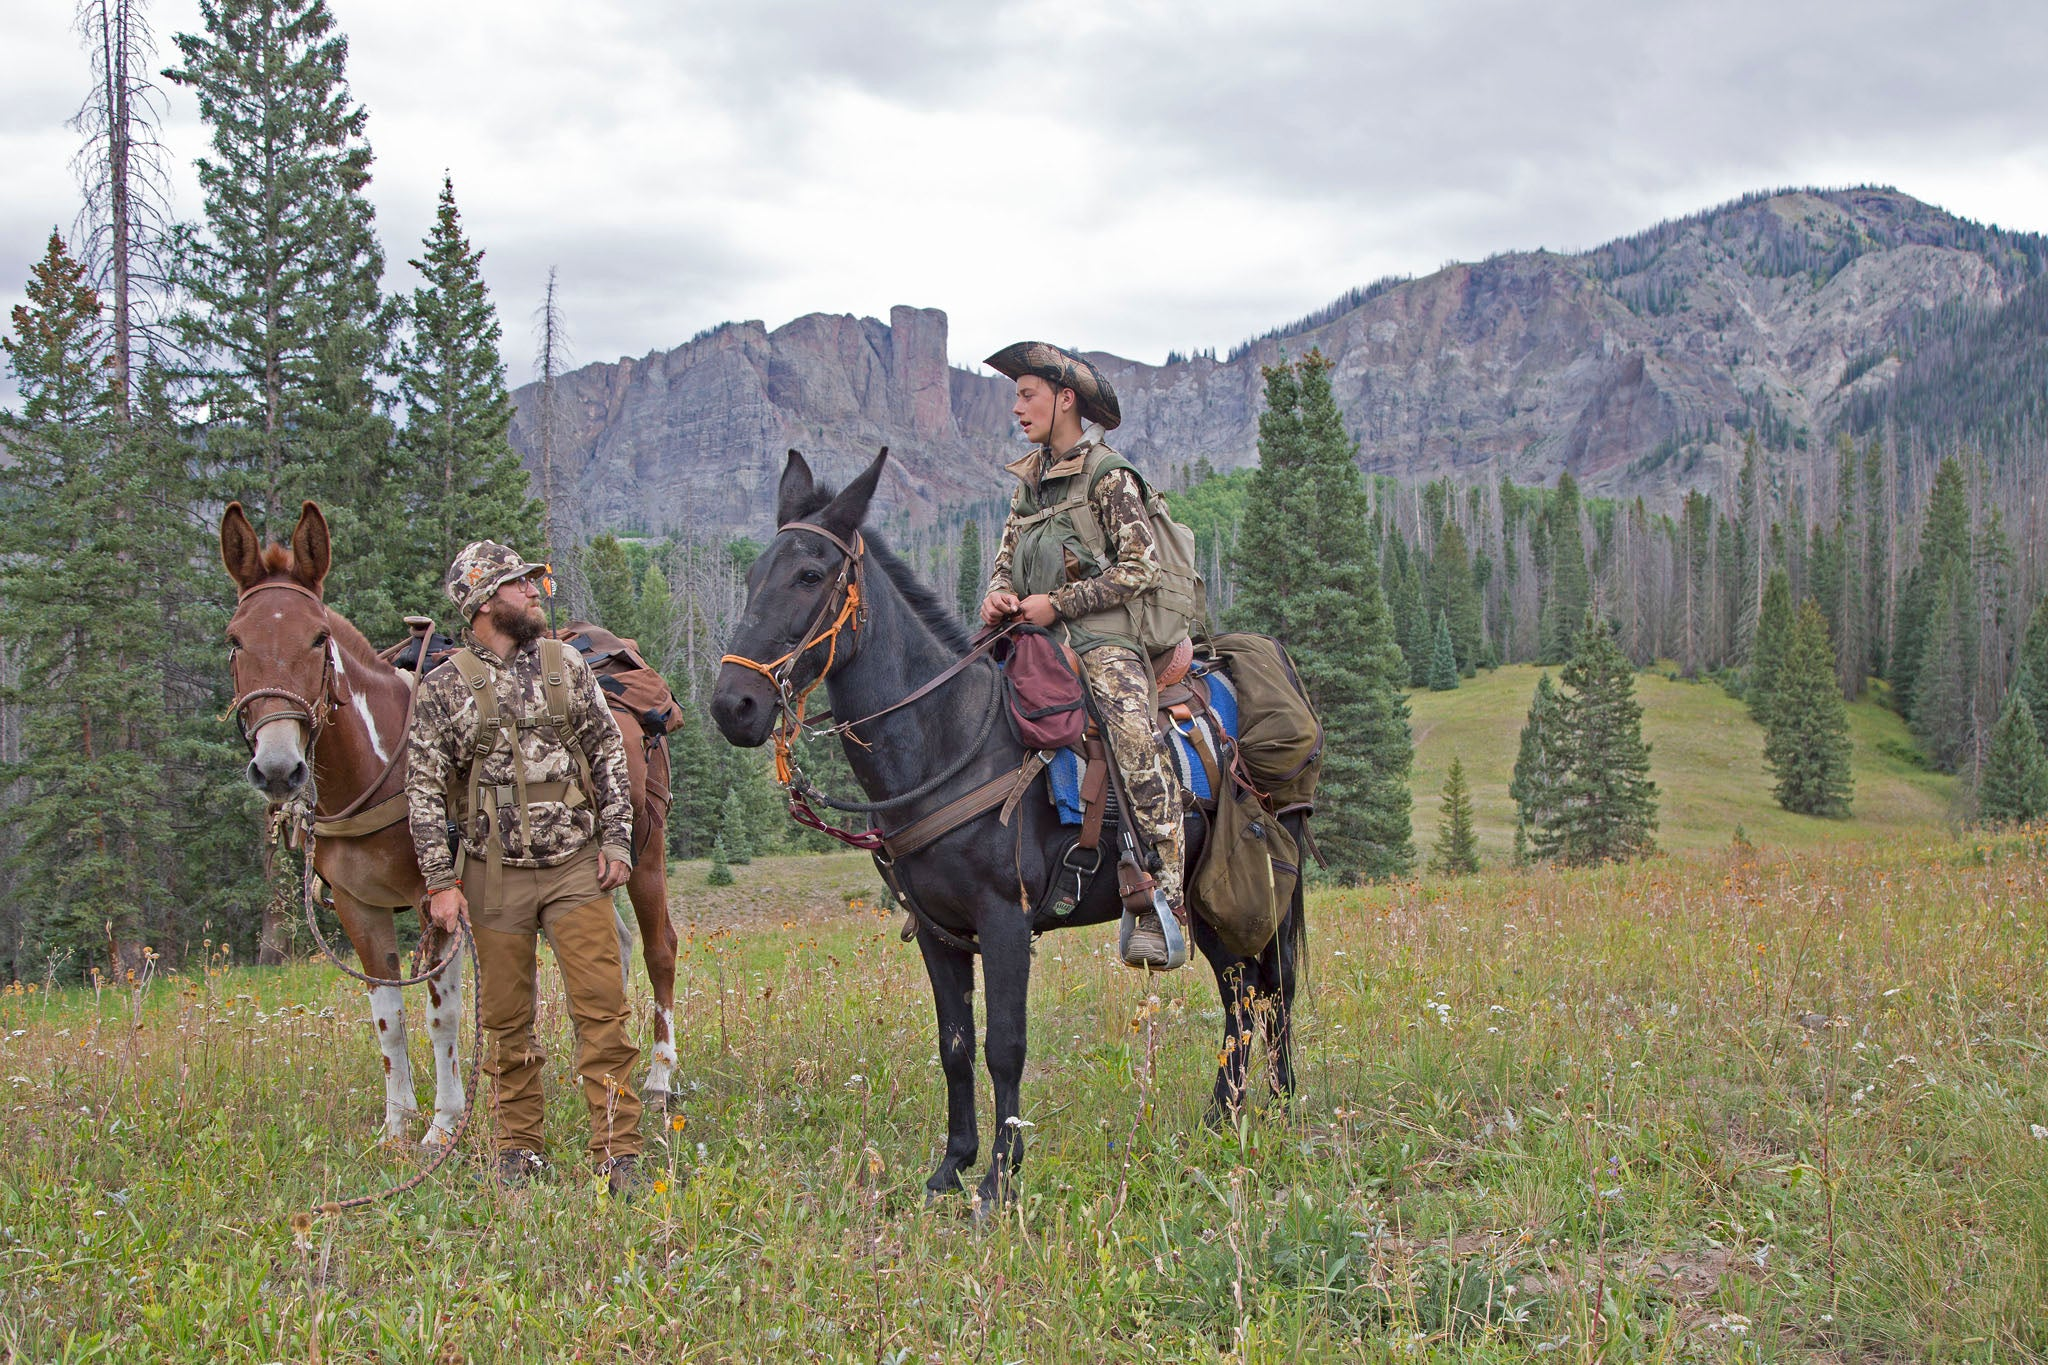 Elk-Pedition: An Arkansan's First Wapiti Hunt